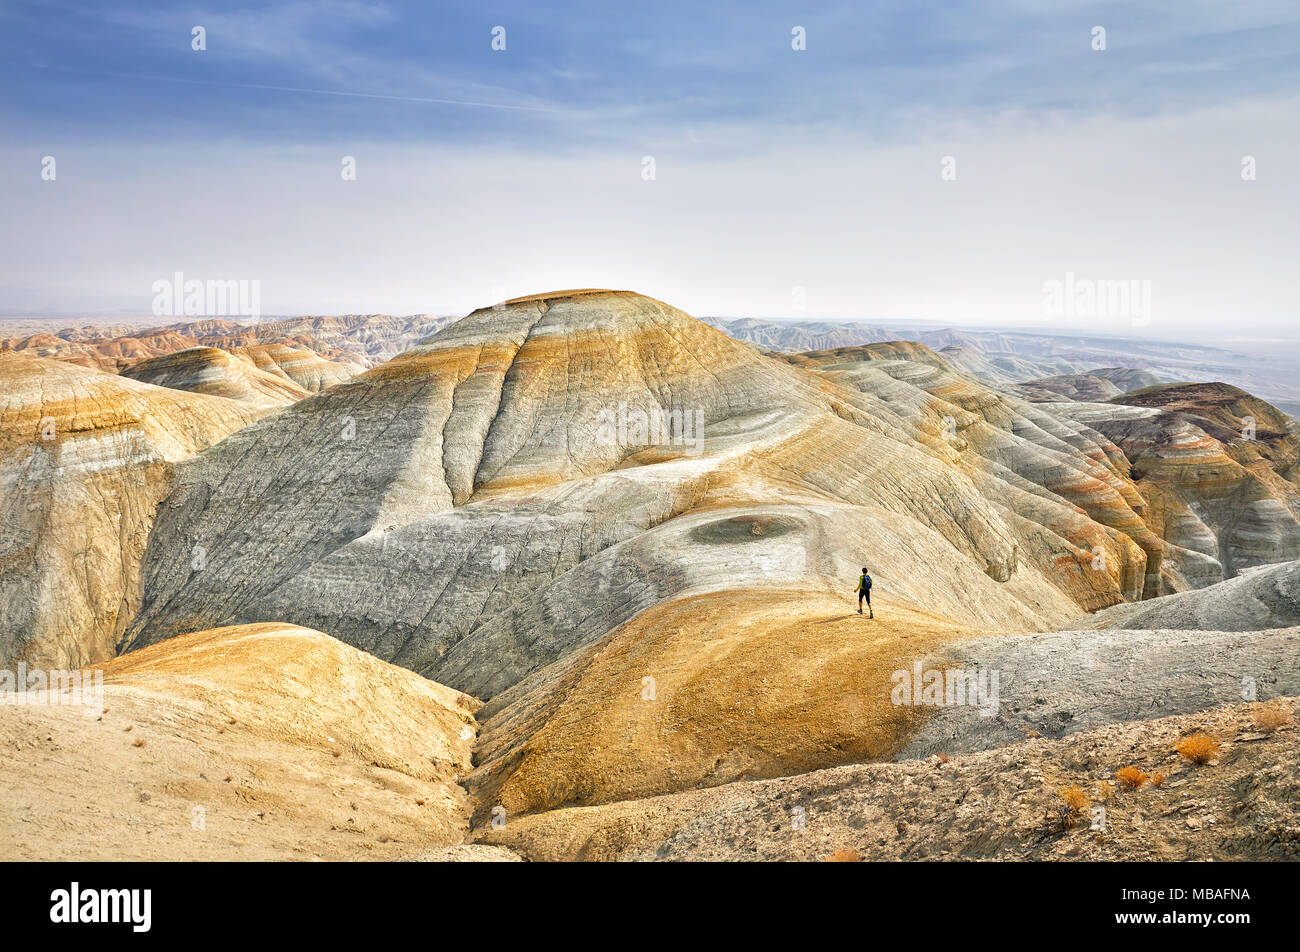 Tourist walking at the trail on surreal yellow mountains in desert park Altyn Emel in Kazakhstan - Stock Image